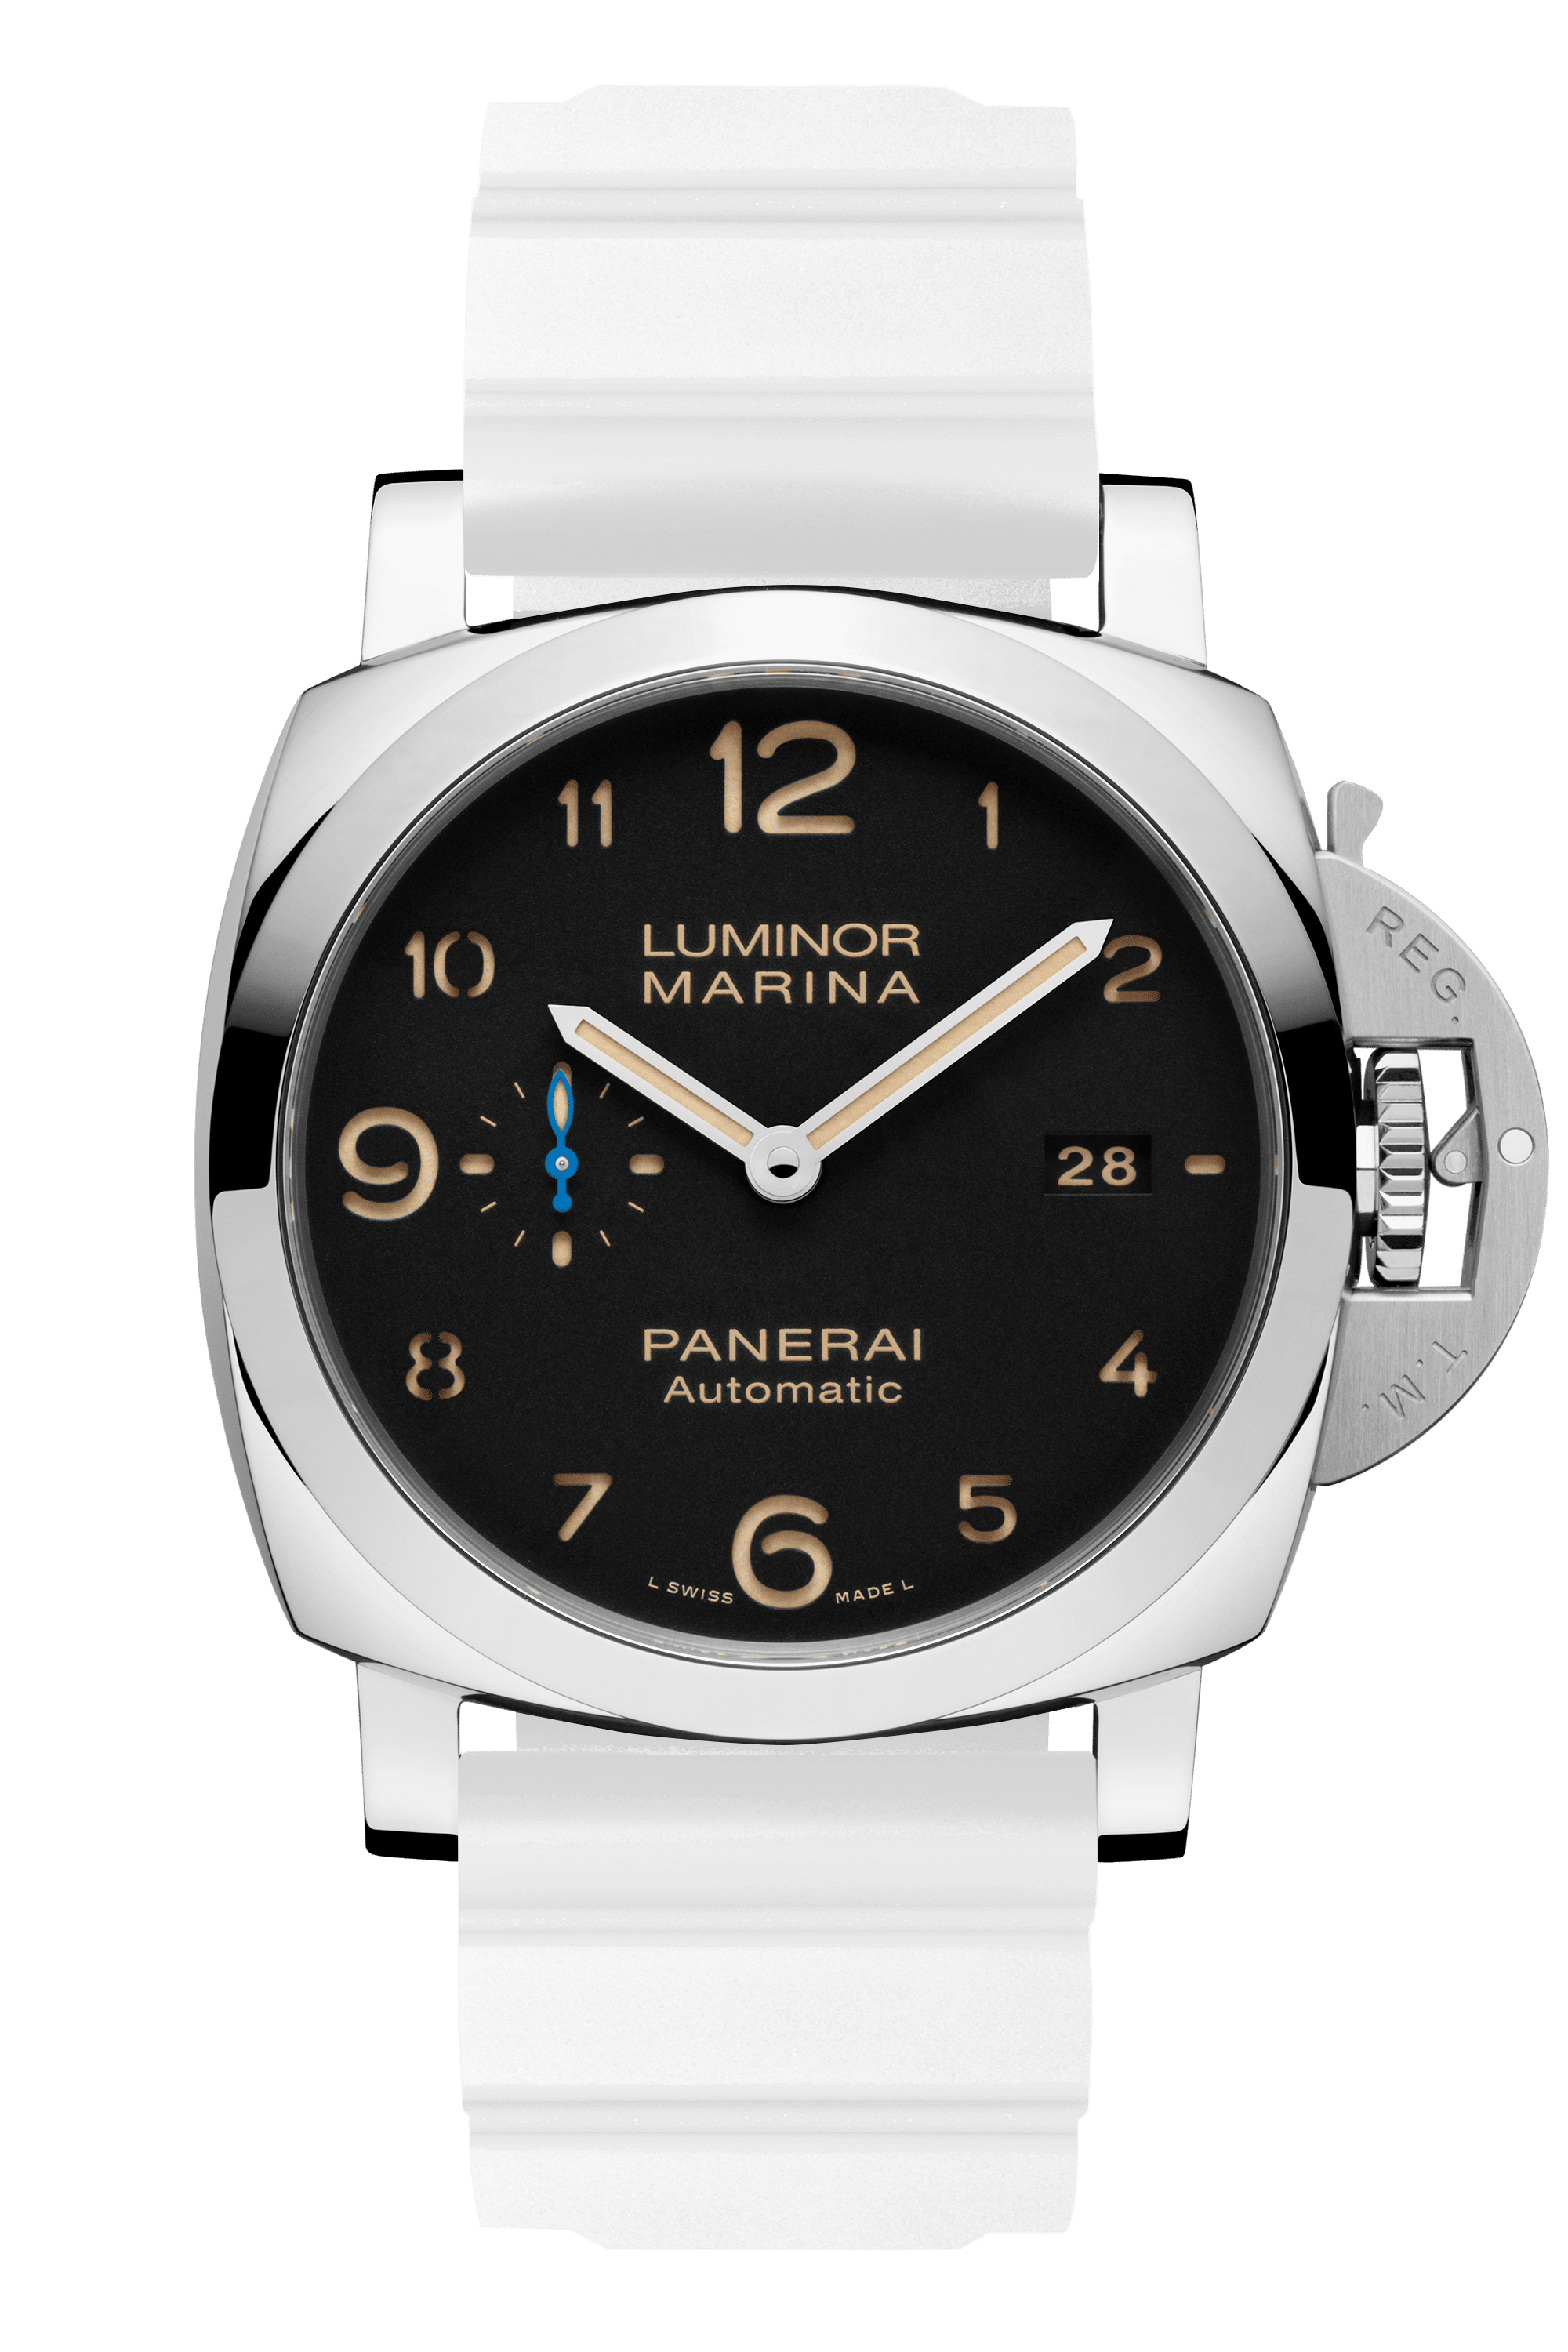 PNPAM01359 - Luminor Marina - 44mm